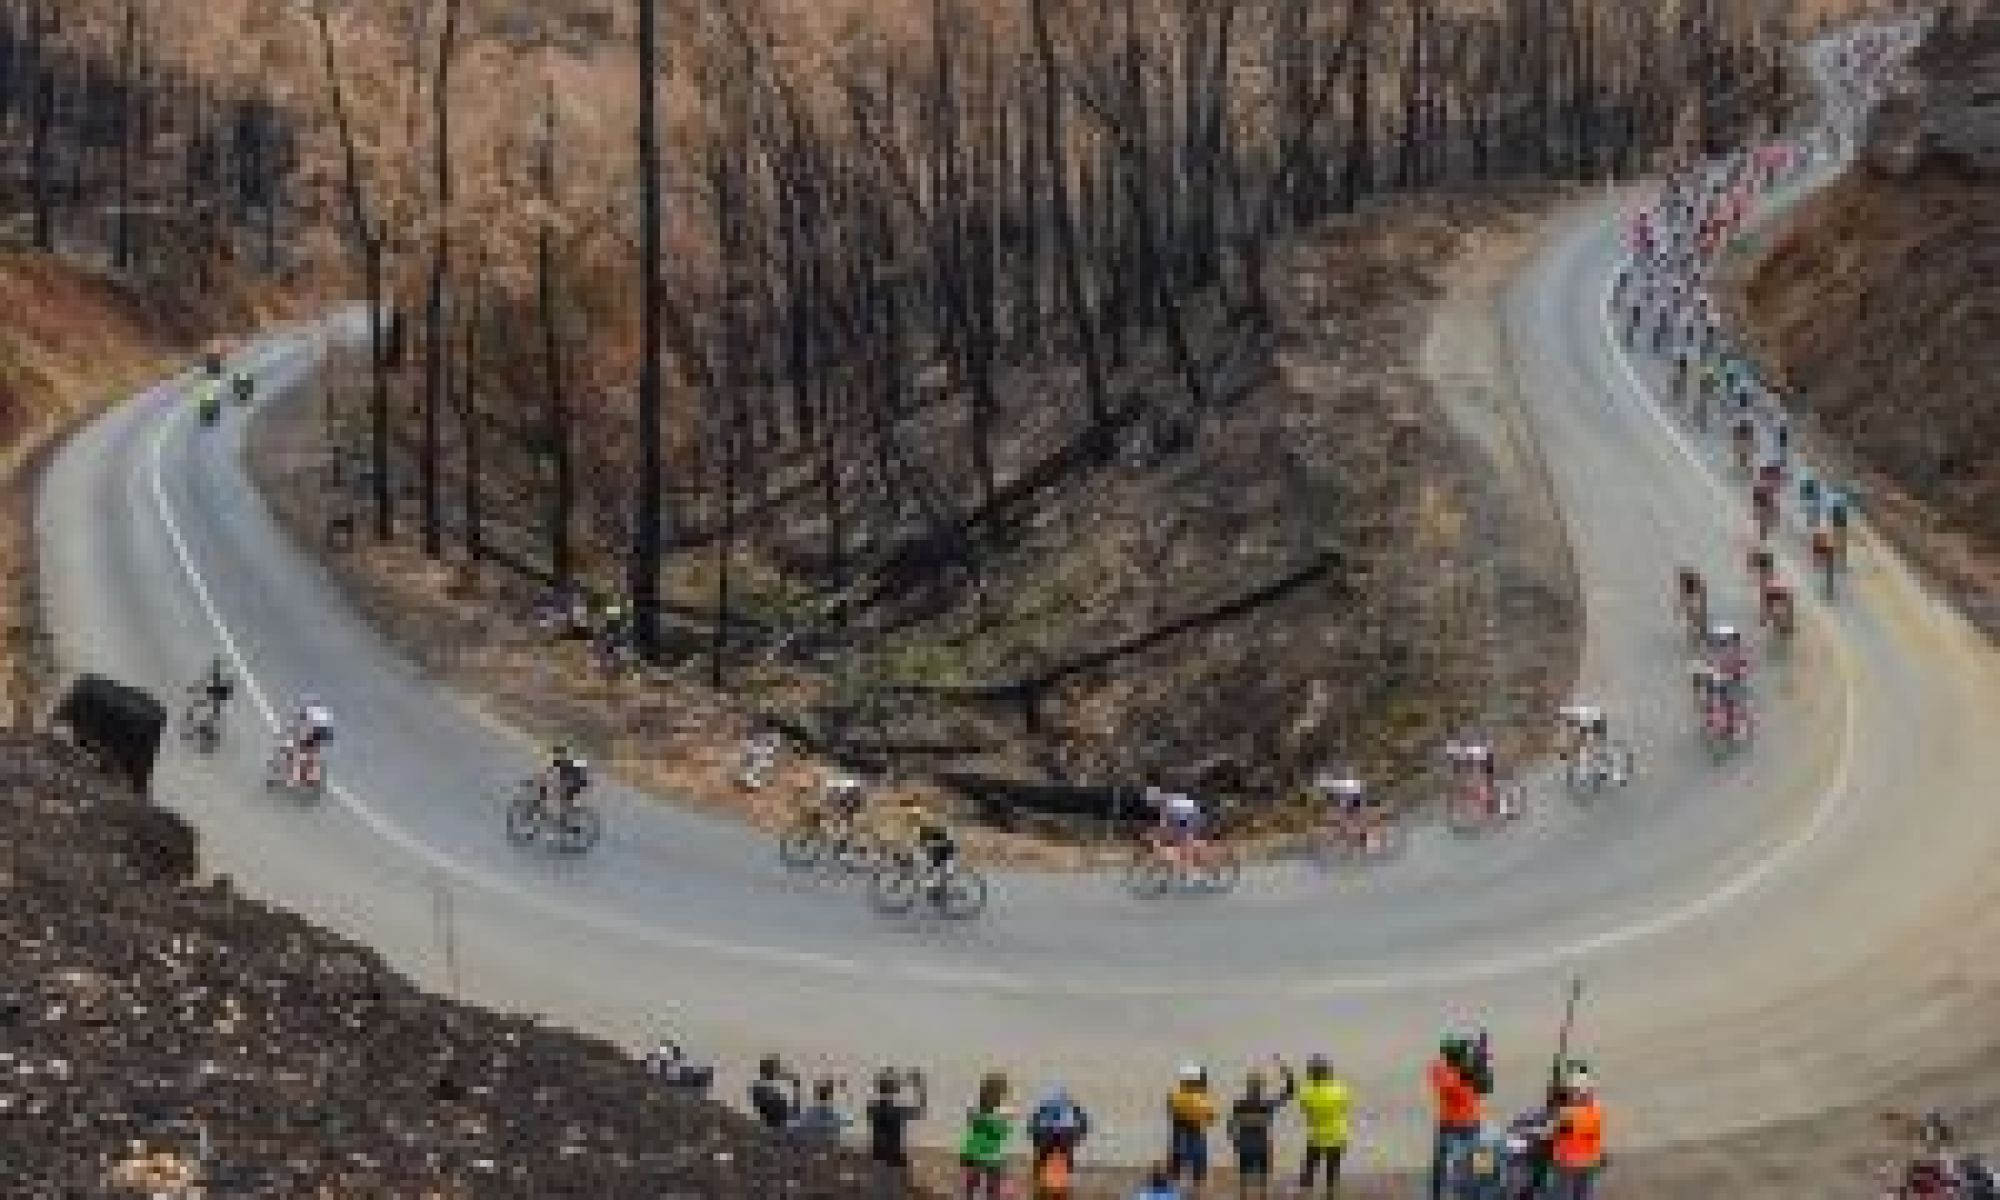 Tour Down Under teeters on edge of cancellation due to Covid-19